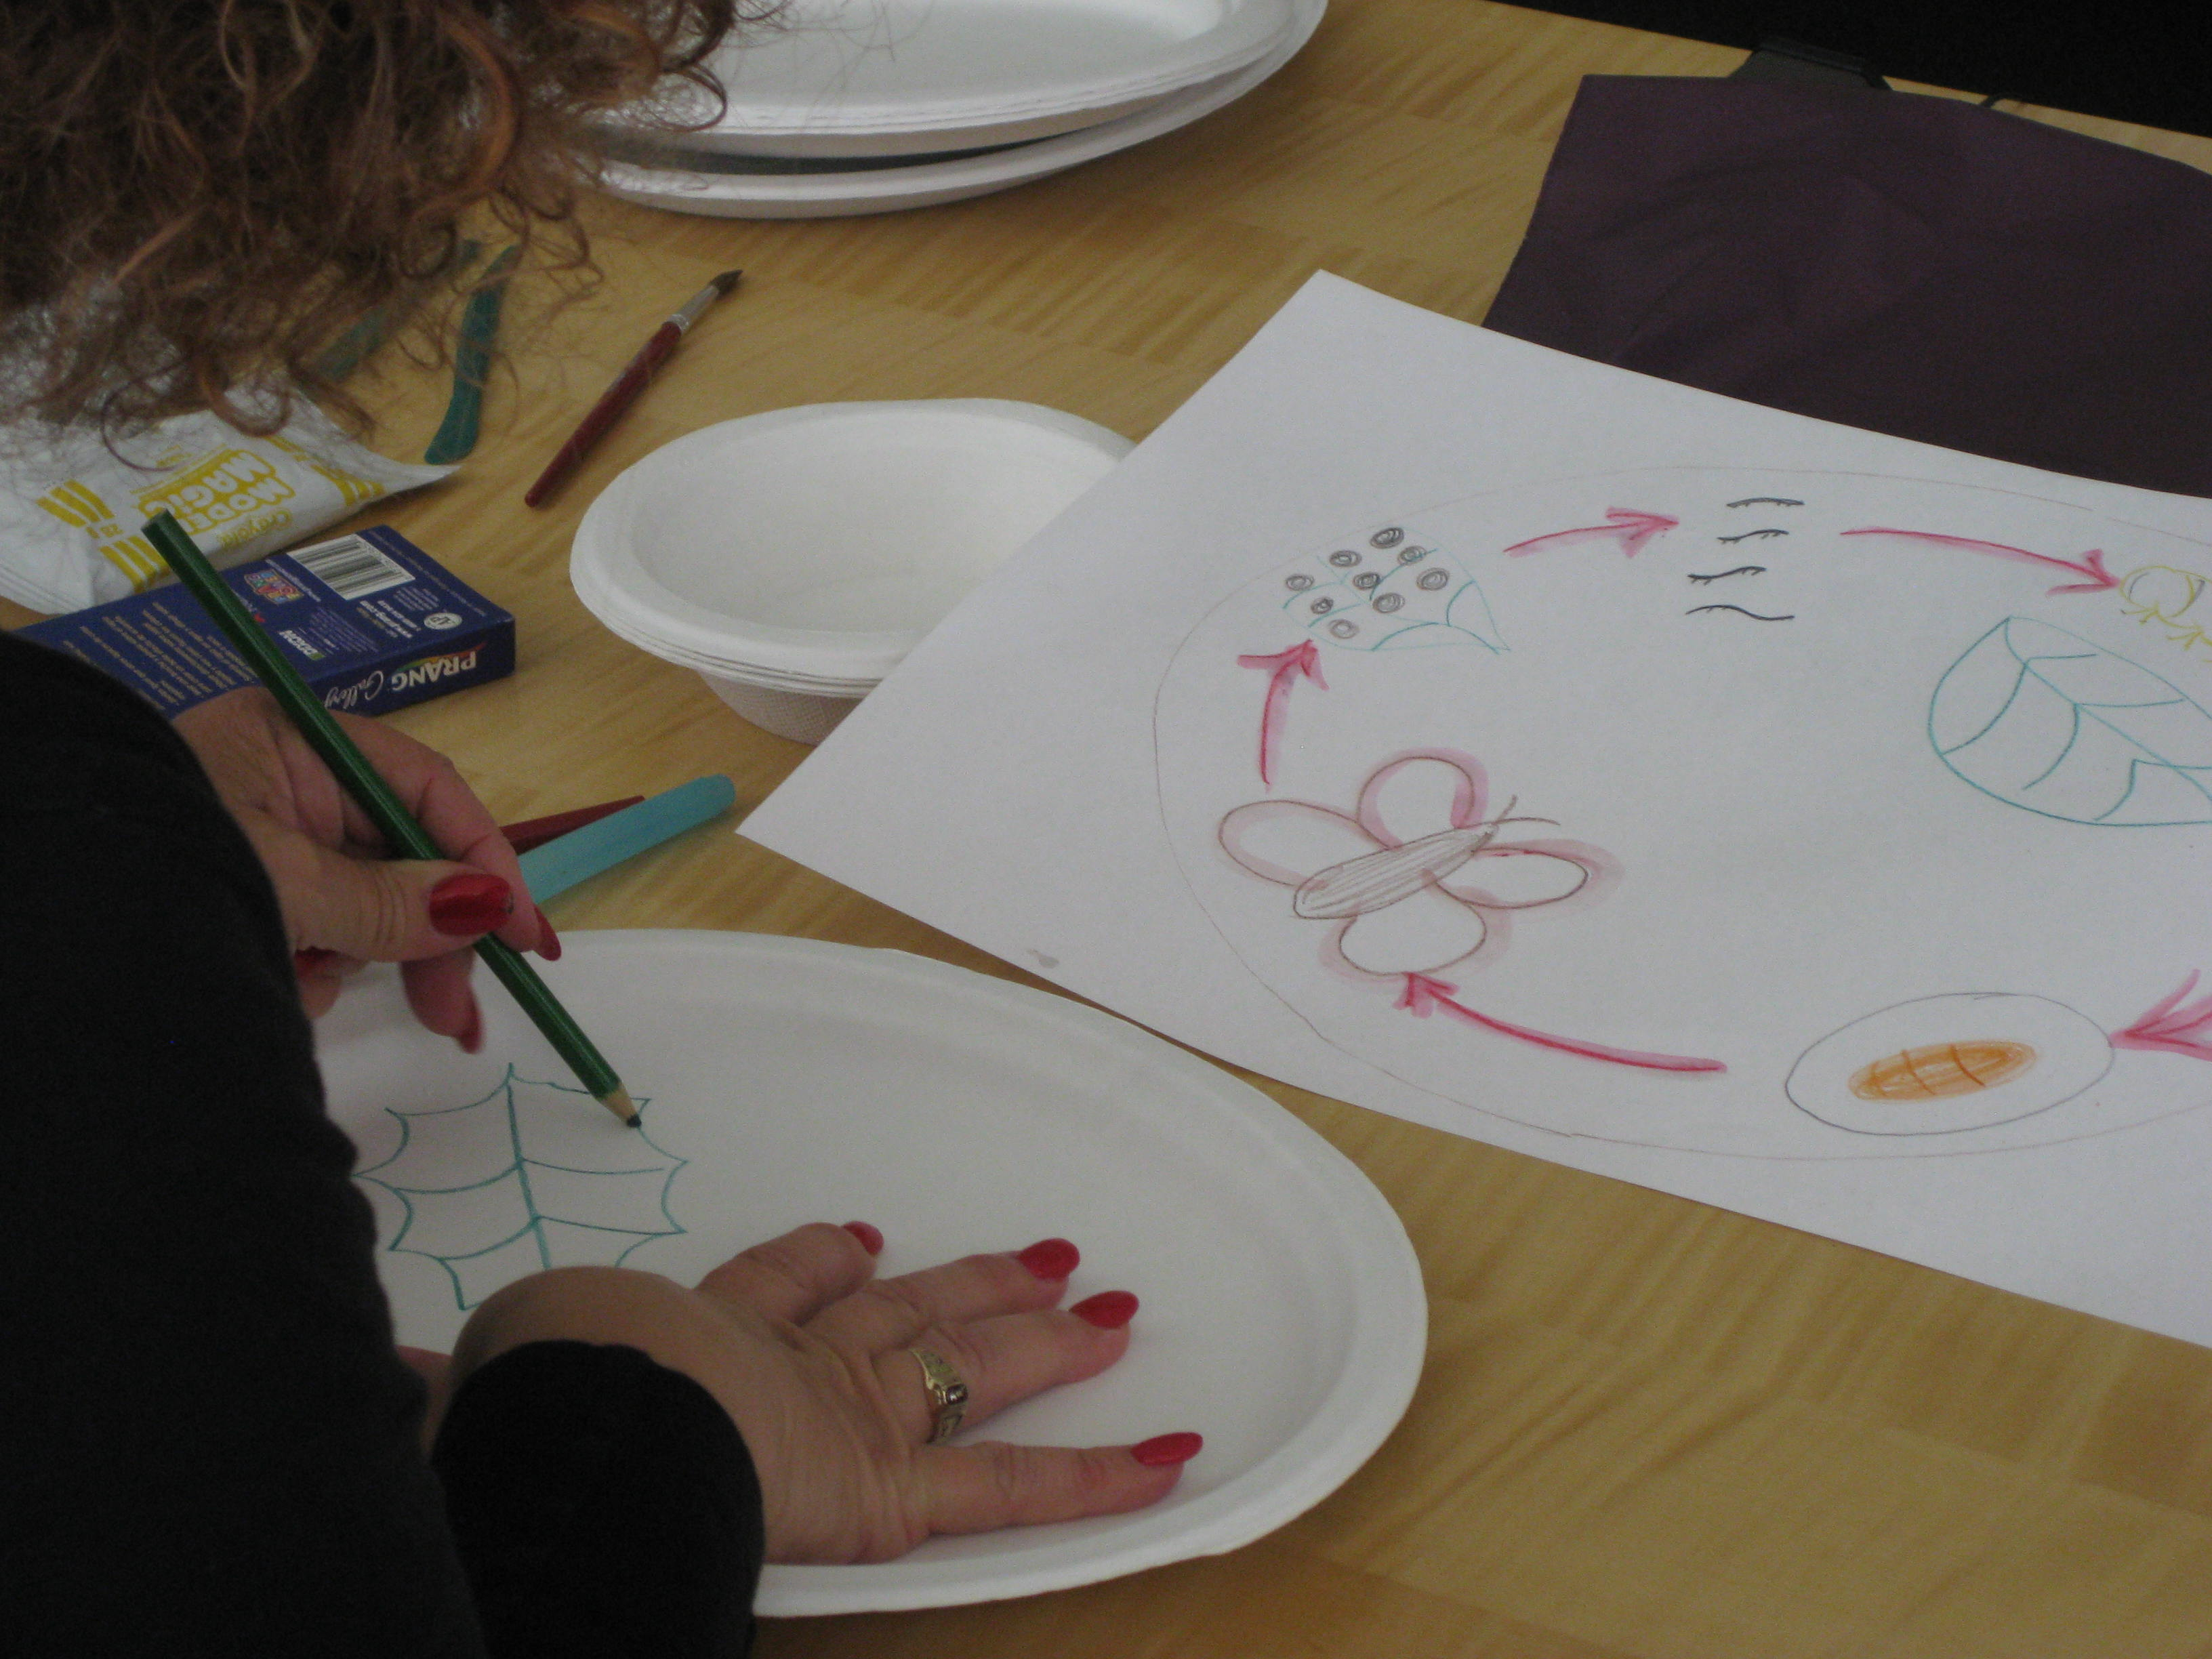 Teachers decorated their plates with everything from patterns and seascapes to life cycles, as depicted here.